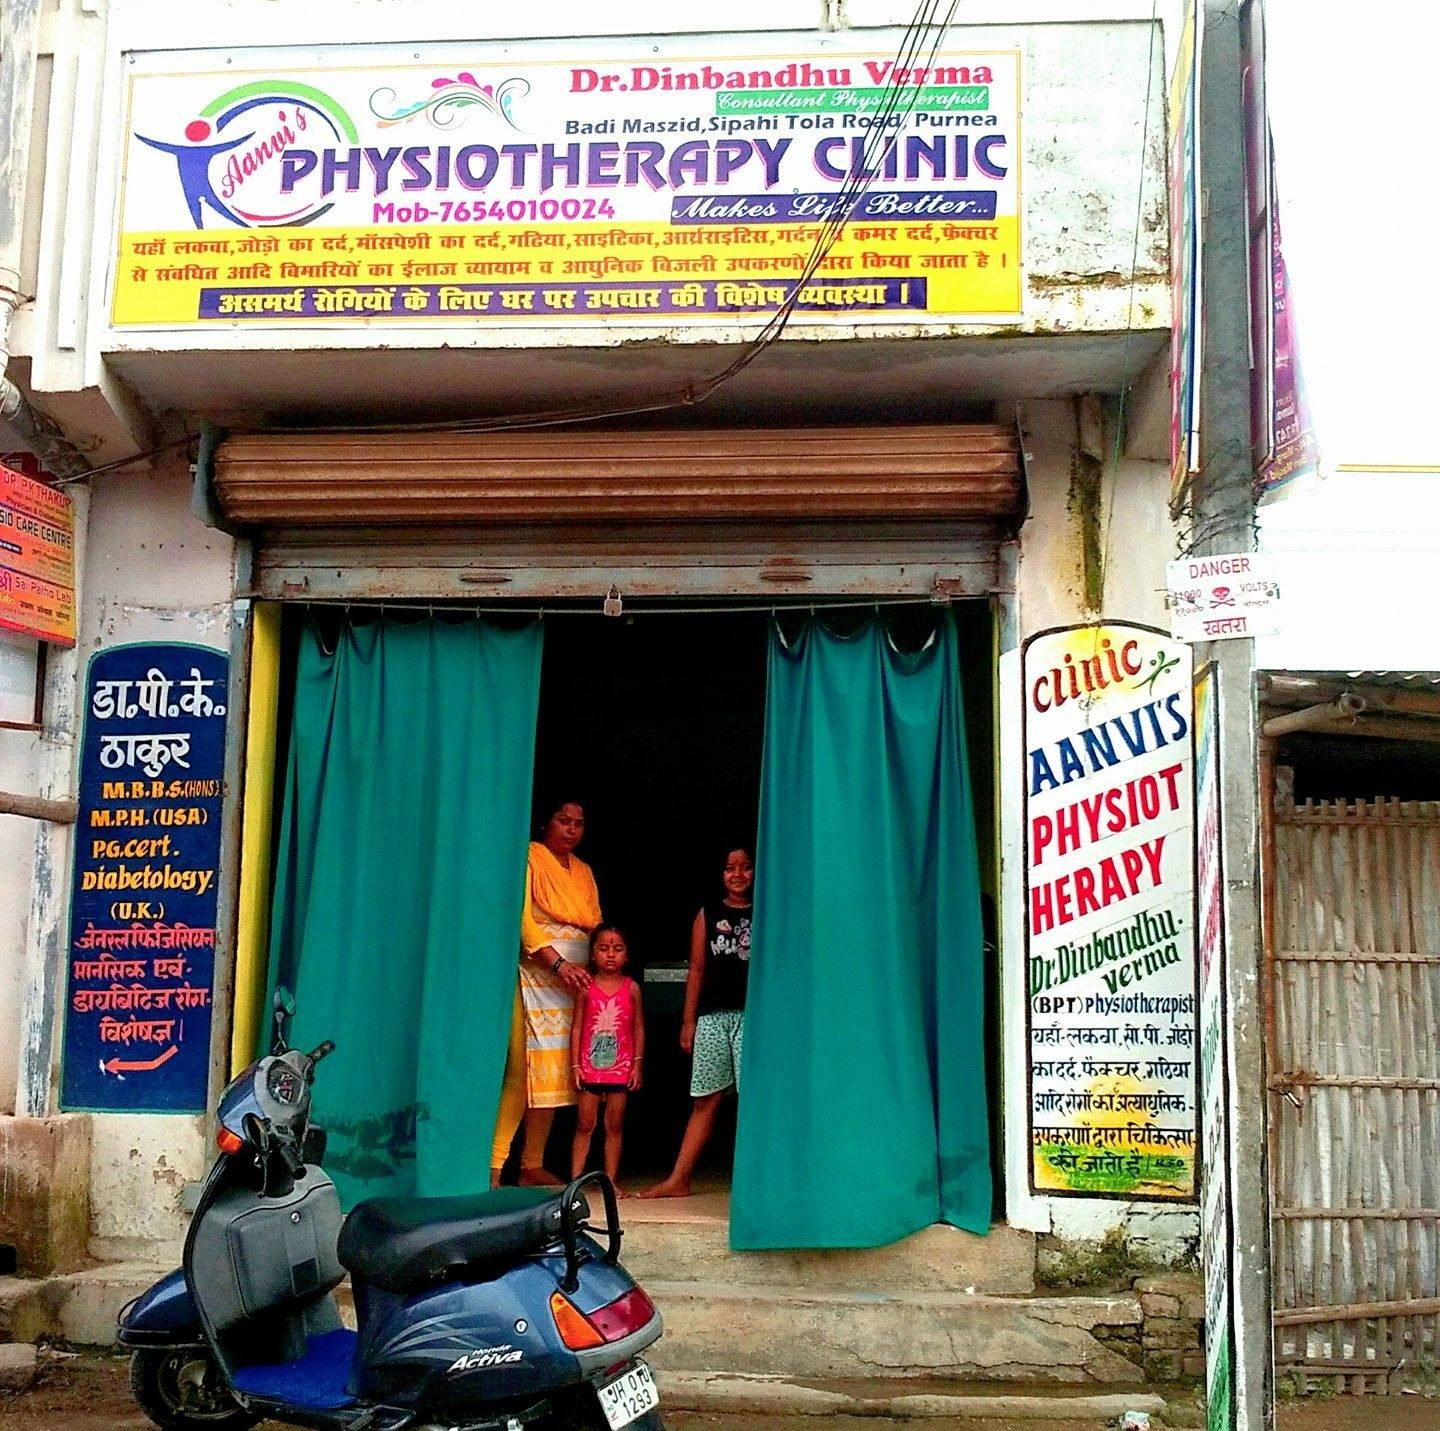 Aanvi's Physiotherapy Clinic